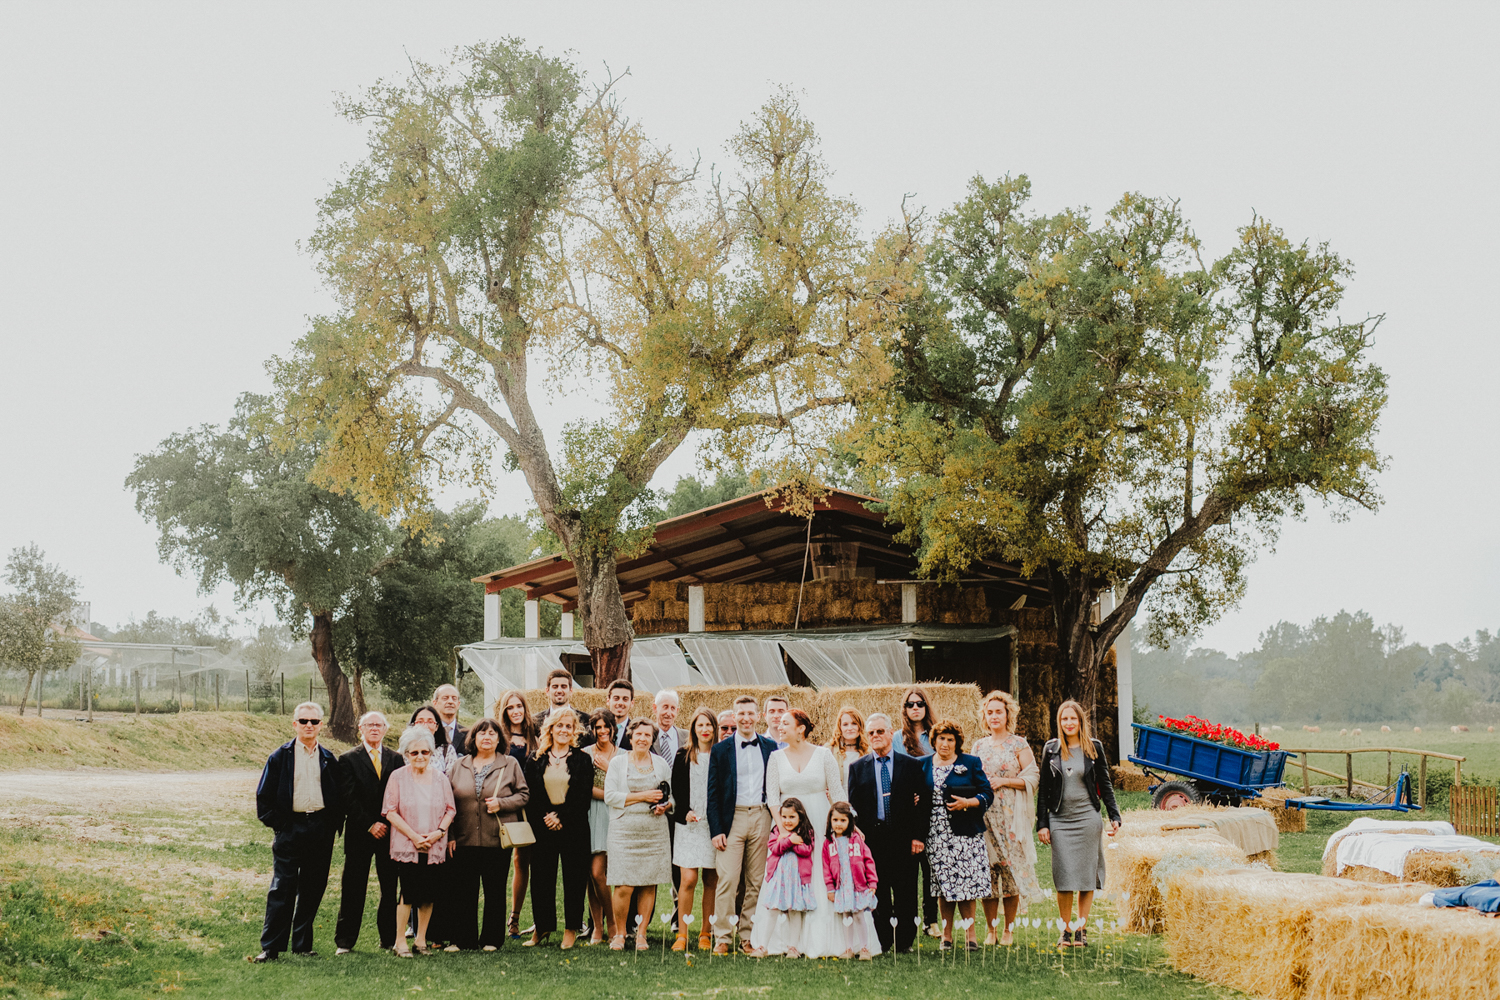 rural wedding portugal alentejo the framers wedding photography - 0030